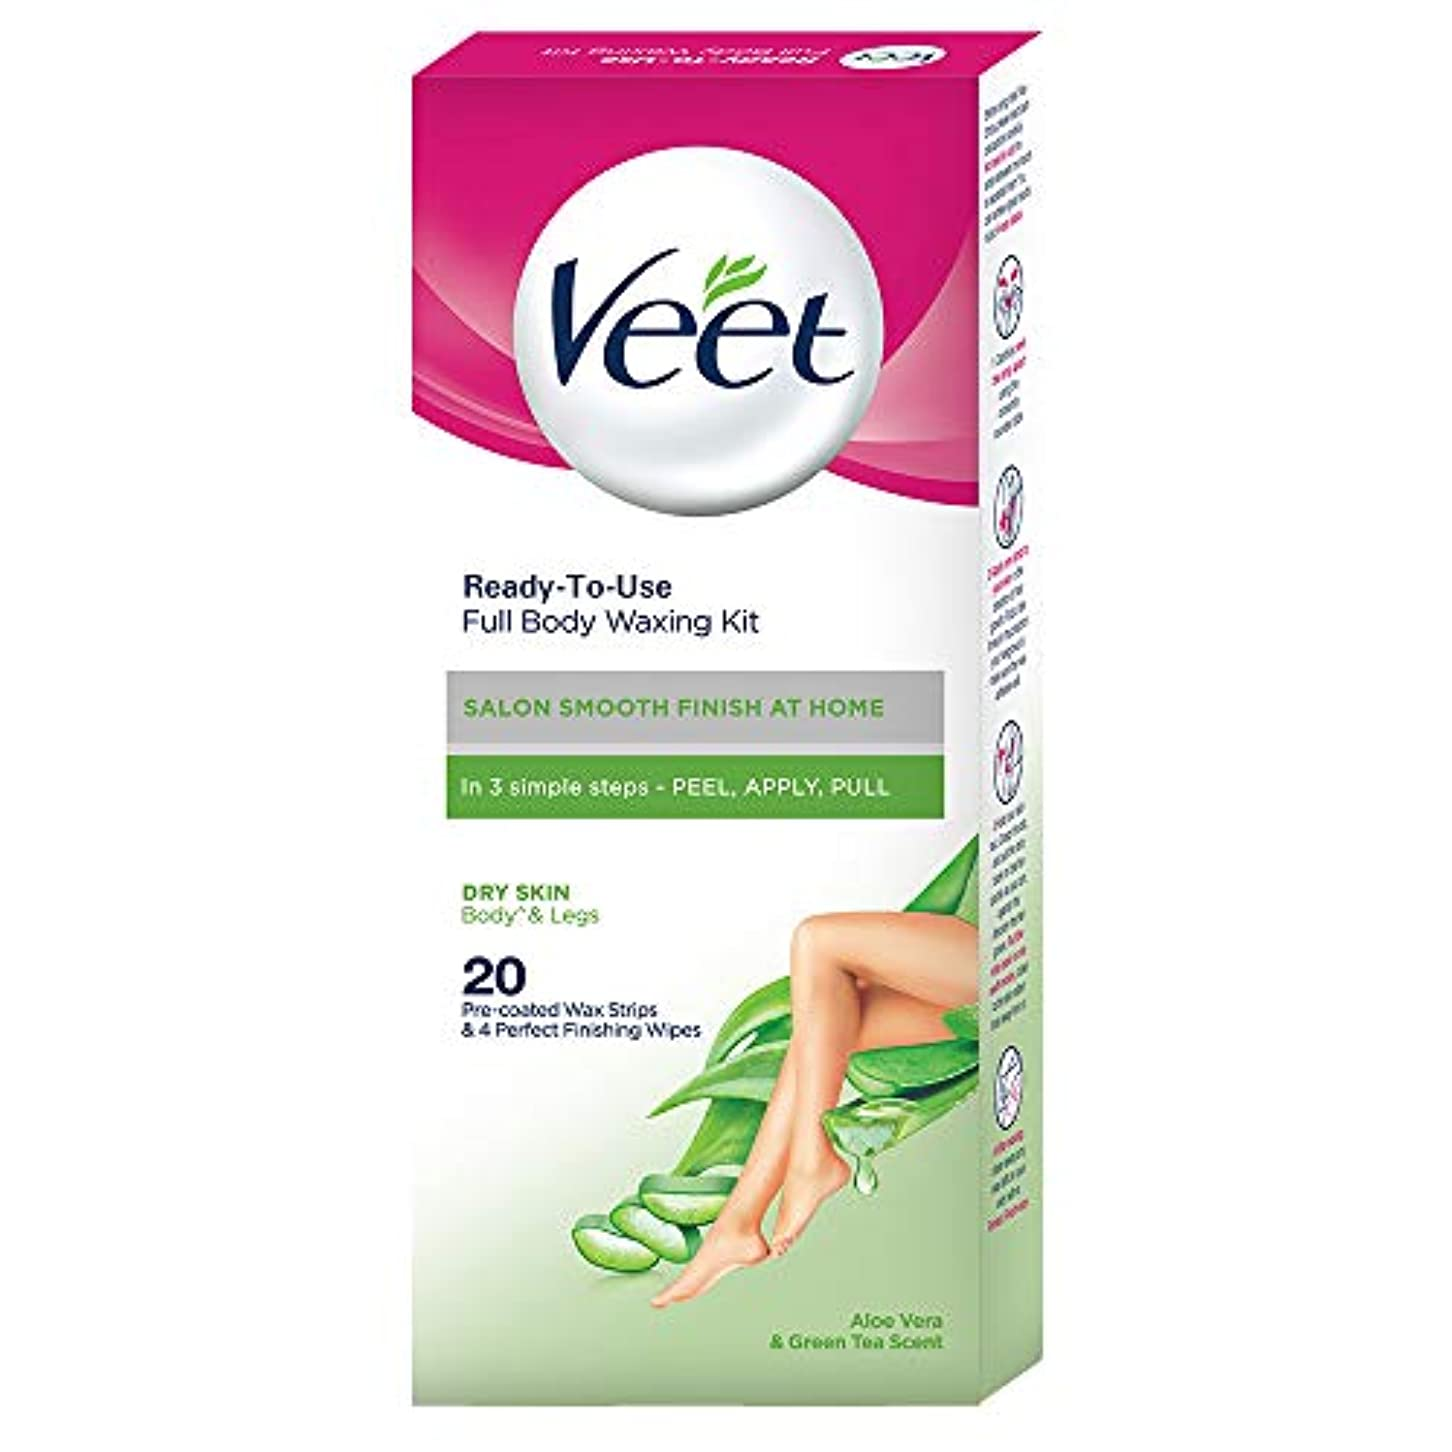 教室呼び起こすそれからVeet Full Body Waxing Kit for Dry Skin, 20 Strips